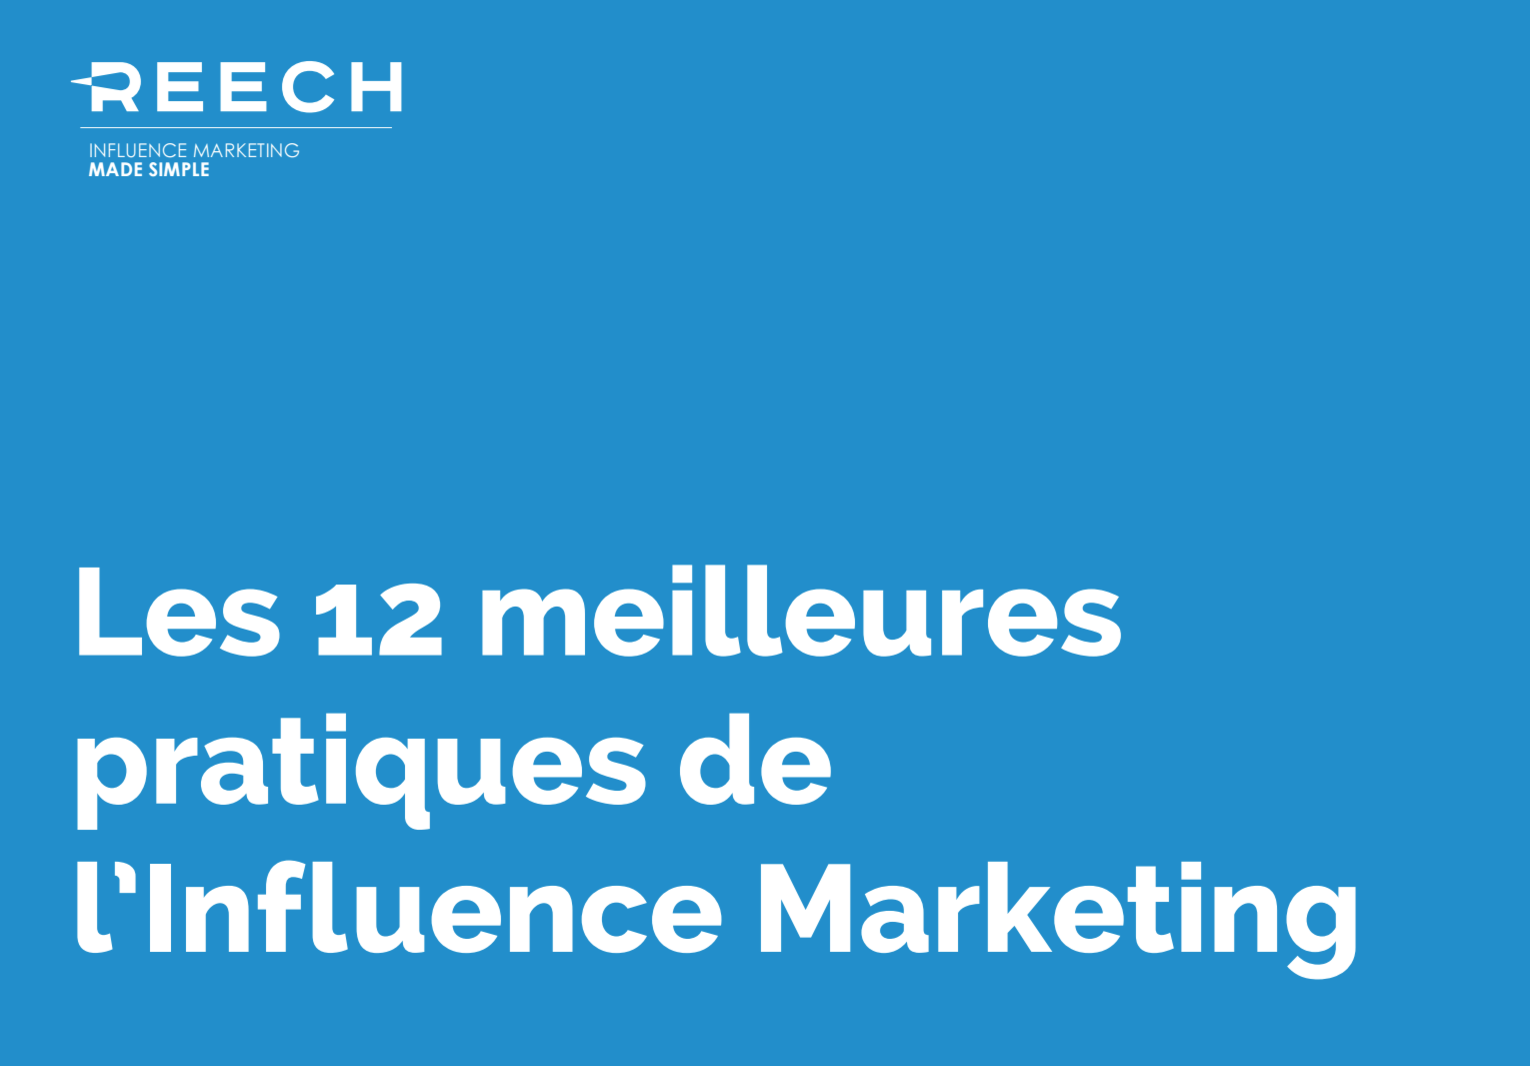 livre-blanc-marketing-influence-reech